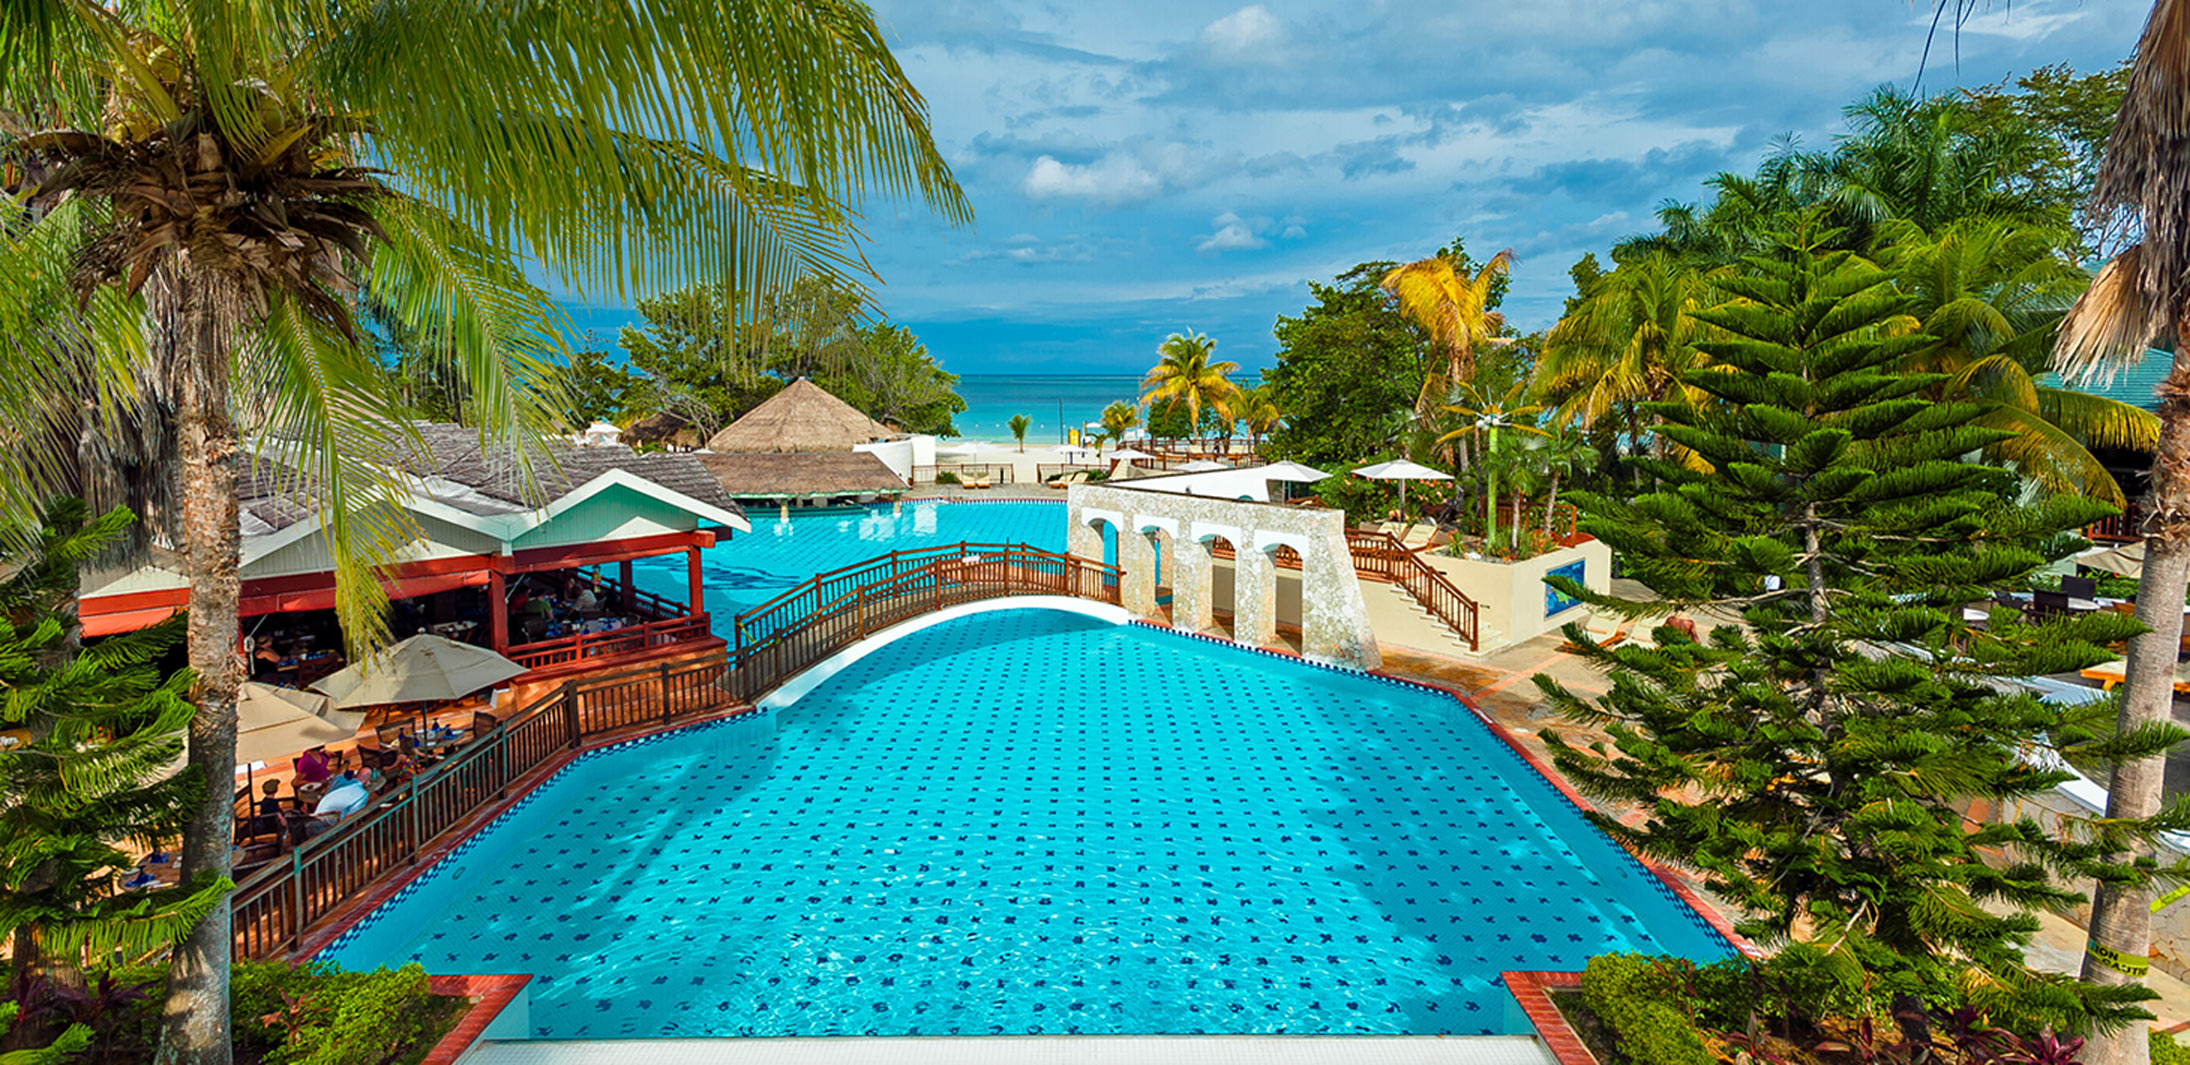 600f4a11d Beaches Resorts - Family Friendly Caribbean All-Inclusives   Vacations